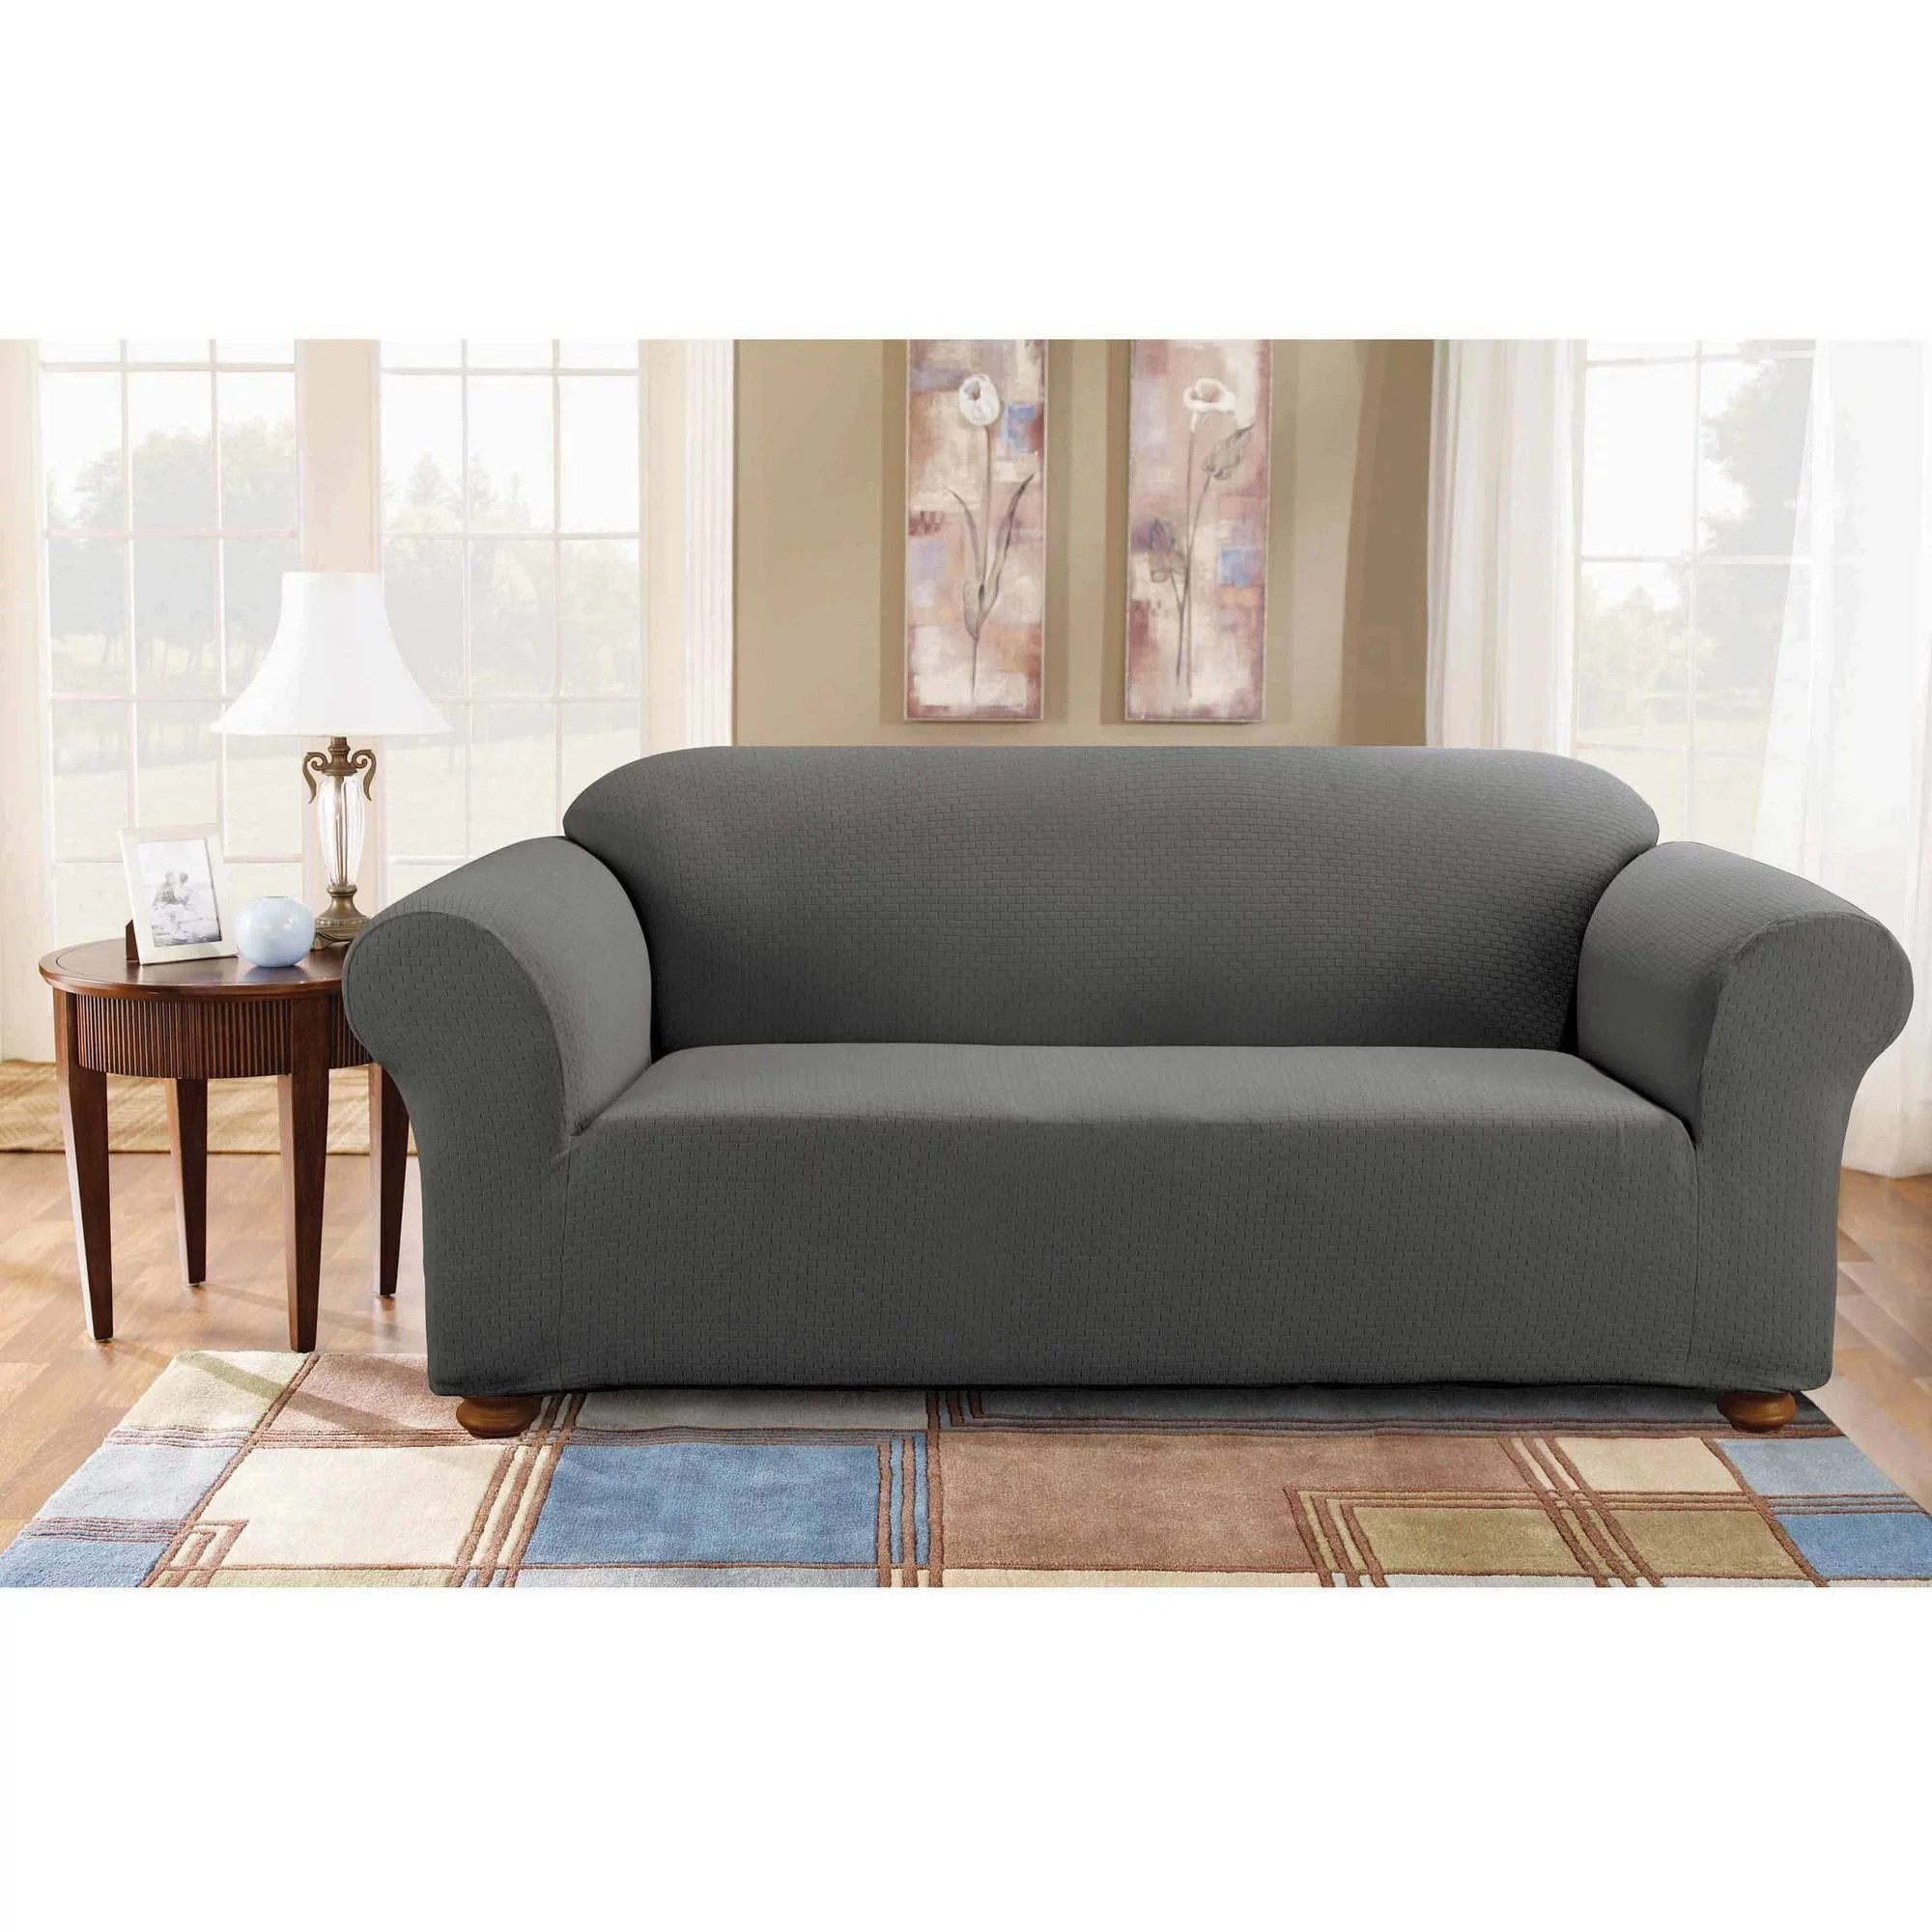 Sofa Slipcovers Sure Fit Simple Stretch Subway One Piece Sofa Slipcover